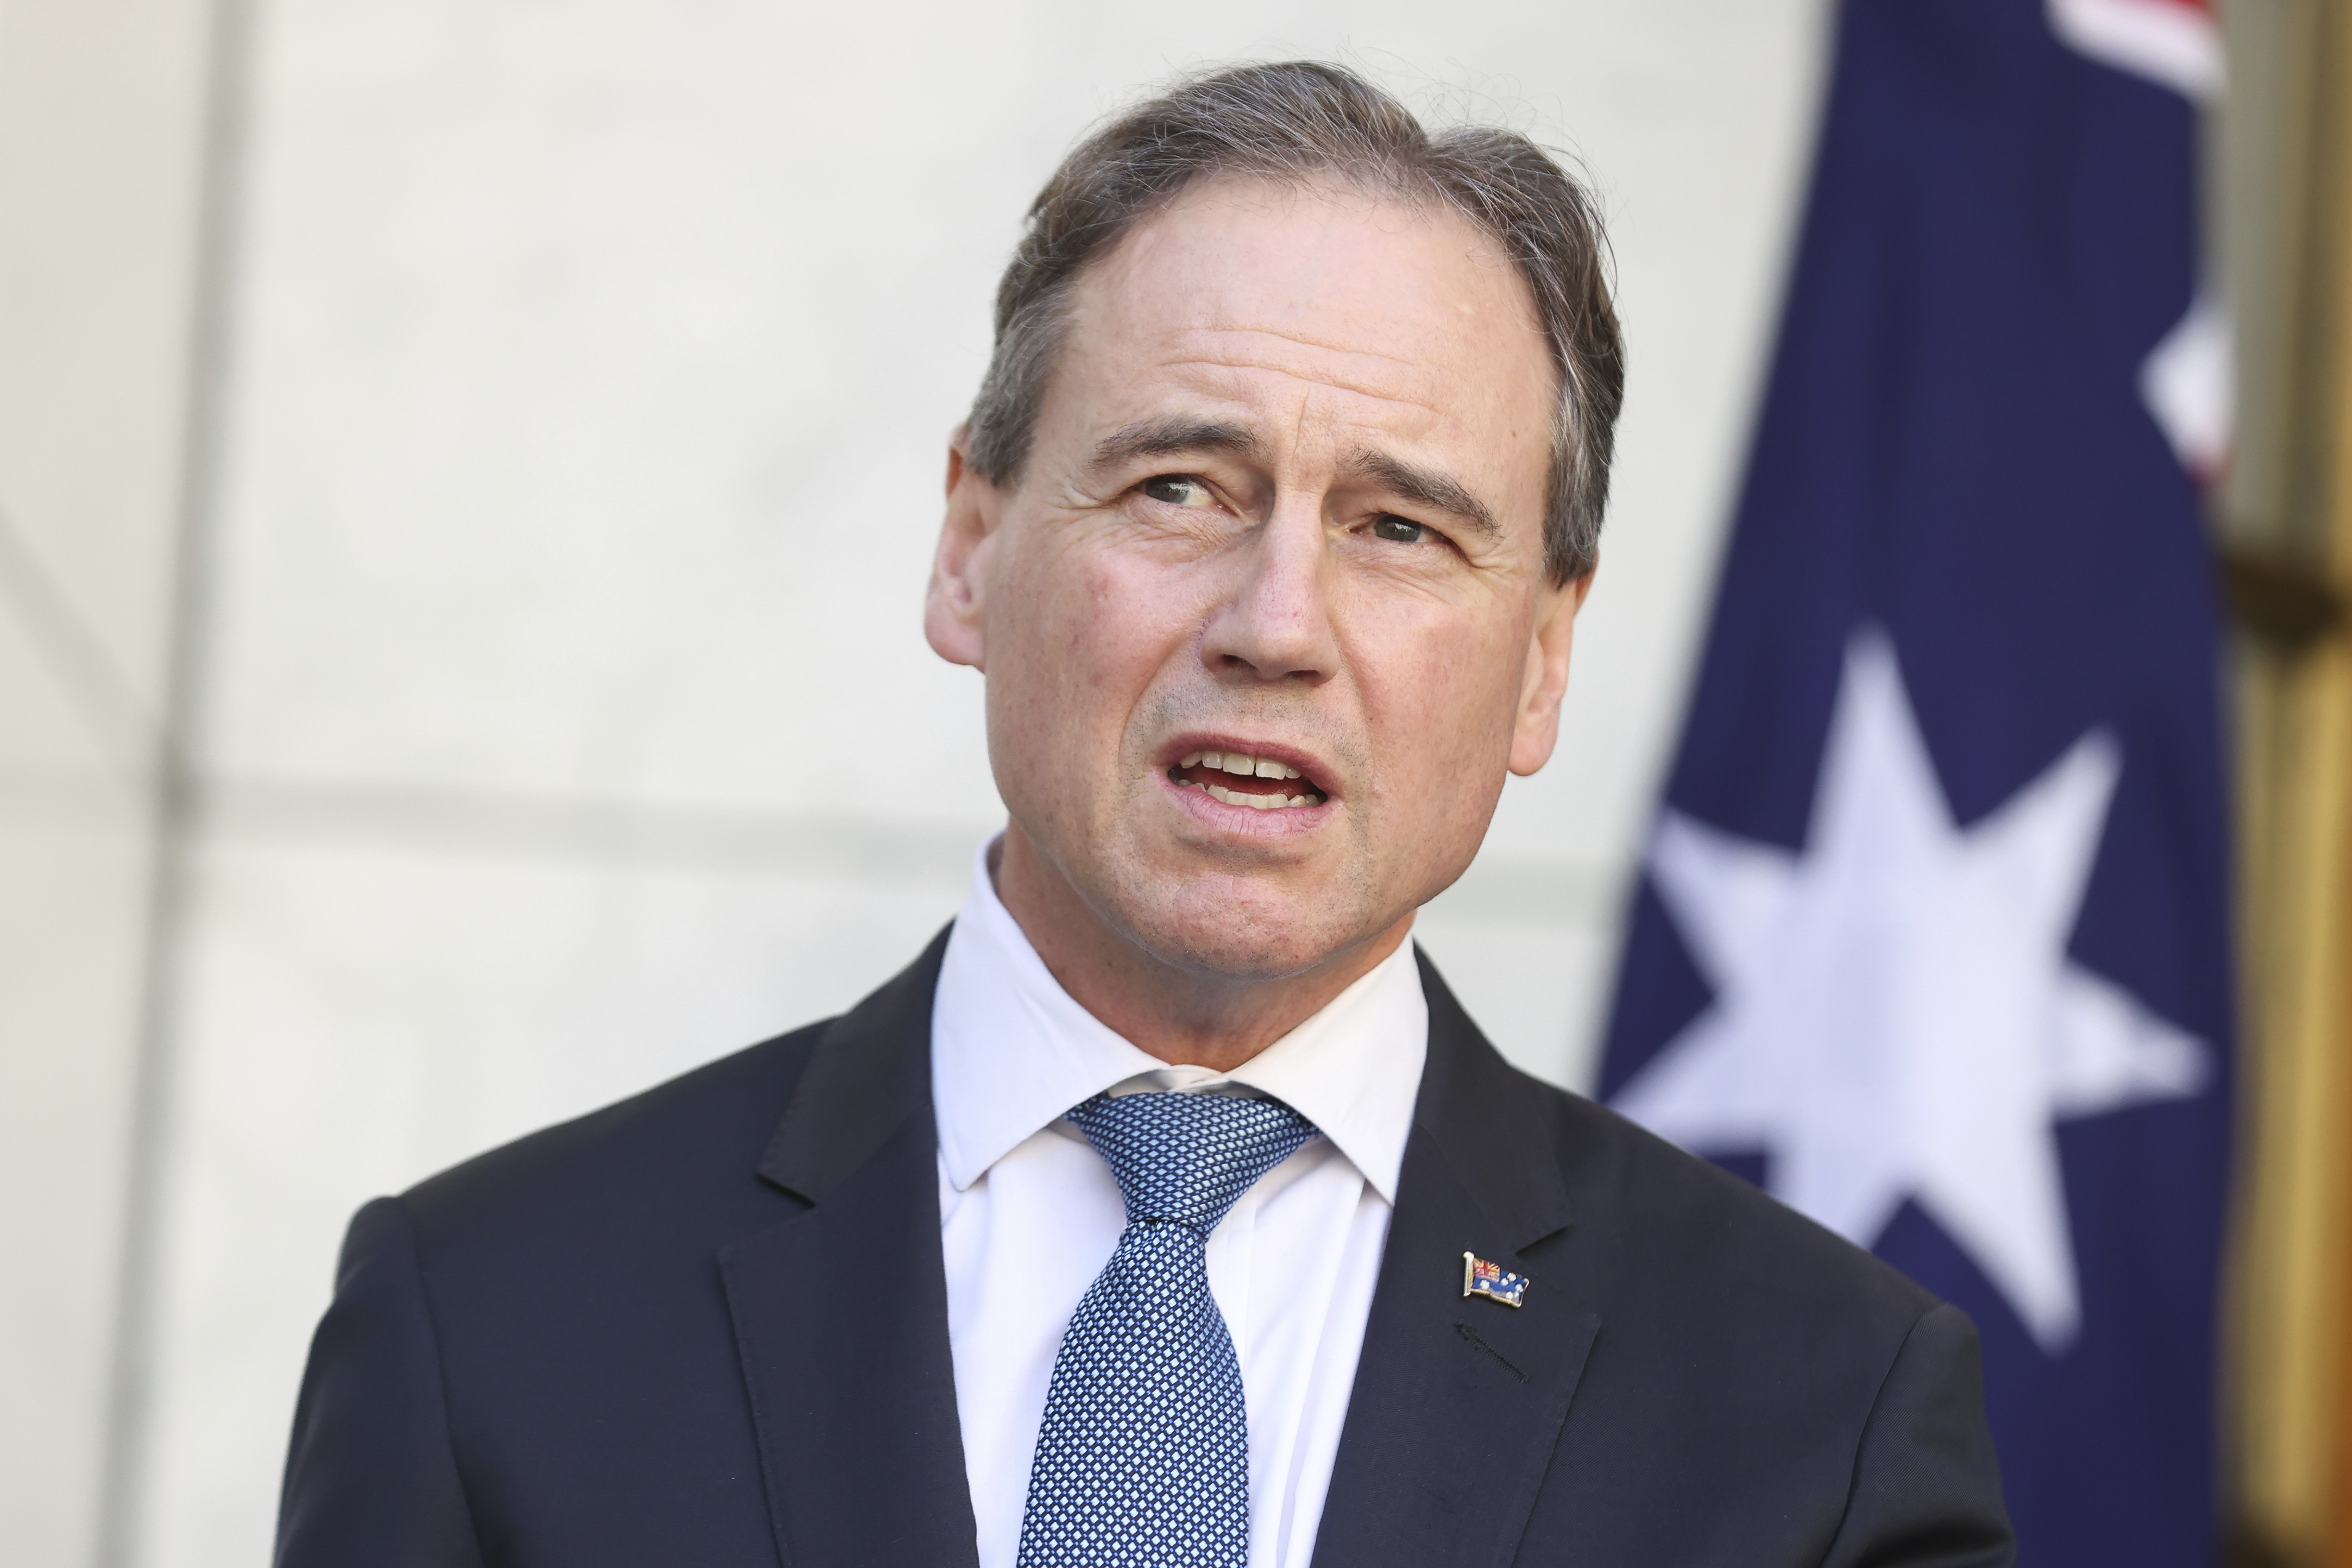 Minister for Health and Aged Care Greg Hunt  during a press conference at Parliament House in Canberra on Friday 3 September 2021. fedpol Photo: Alex Ellinghausen